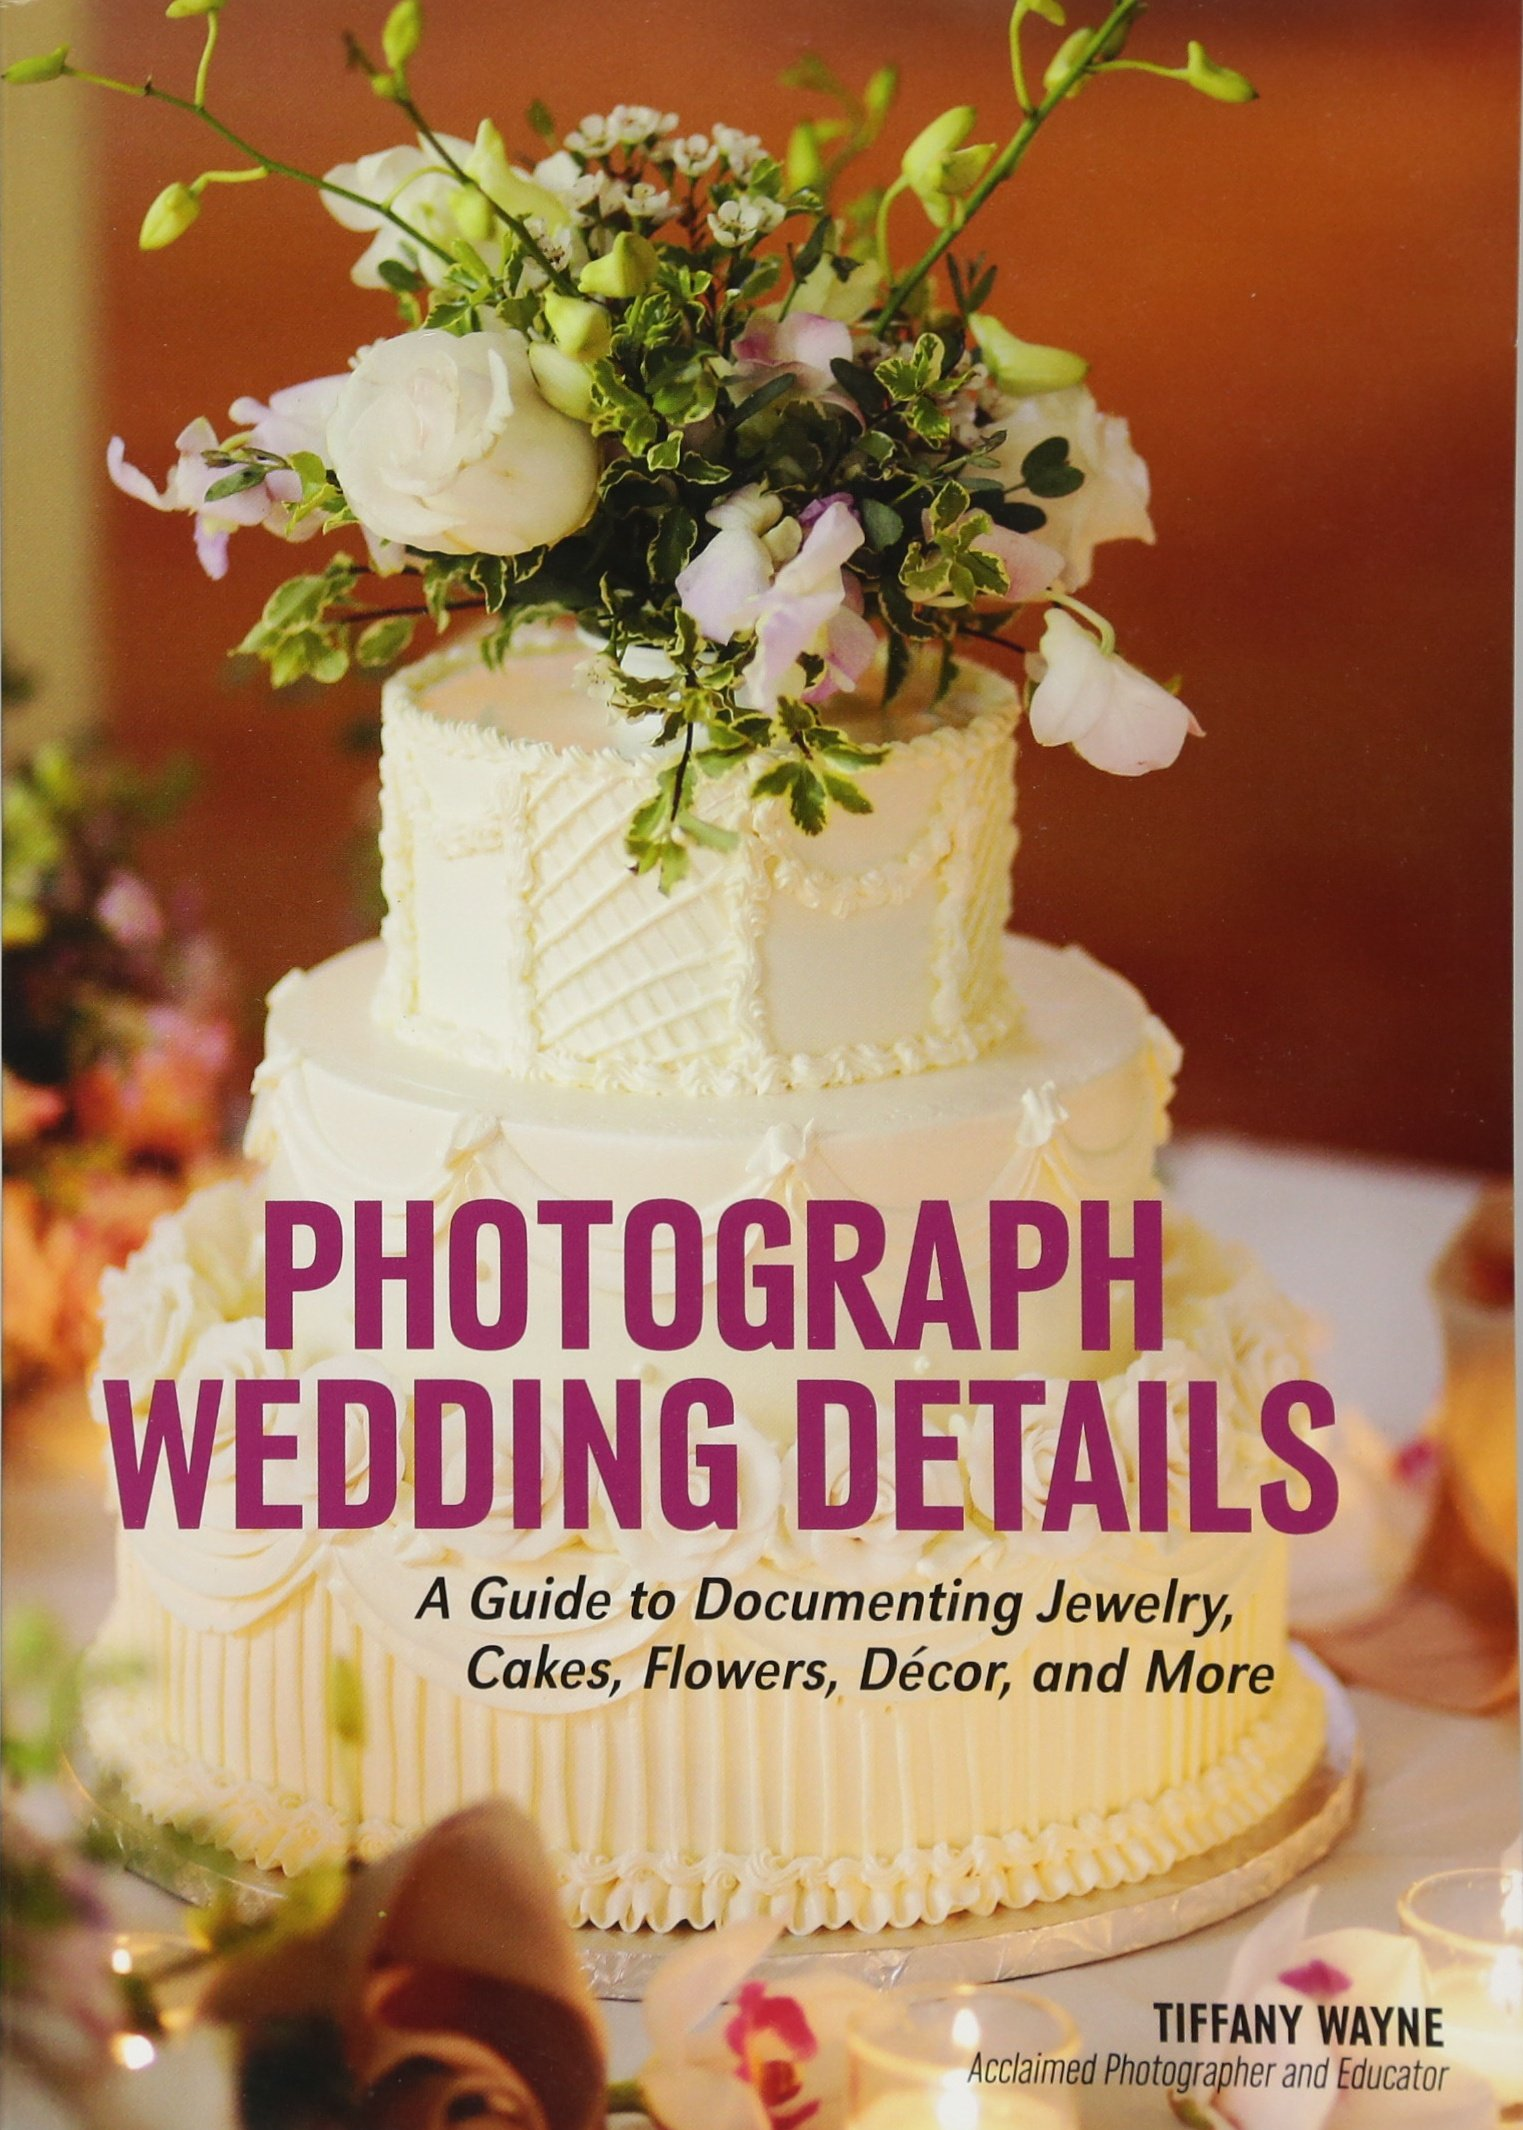 Photograph Wedding Details: A Guide to Documenting Jewelry, Cakes, Flowers, Décor, and More